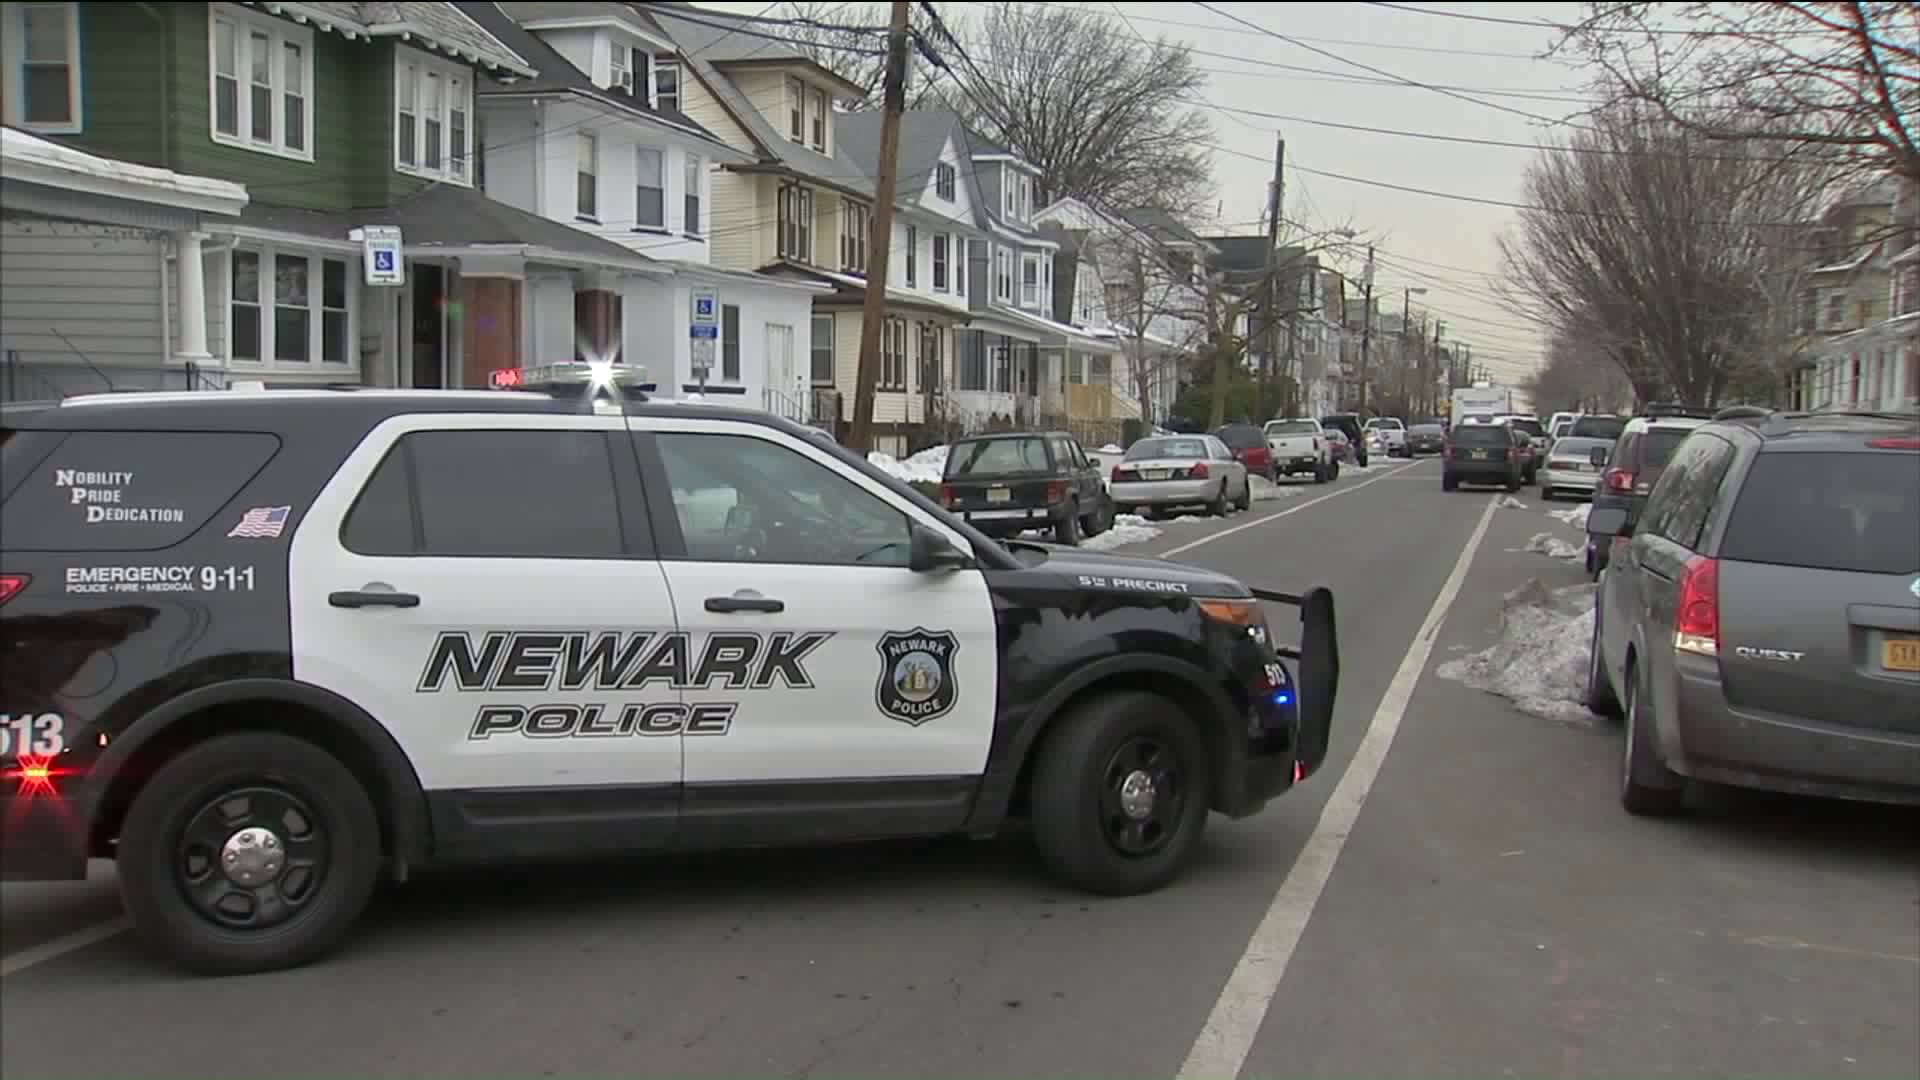 Newark police vehicle